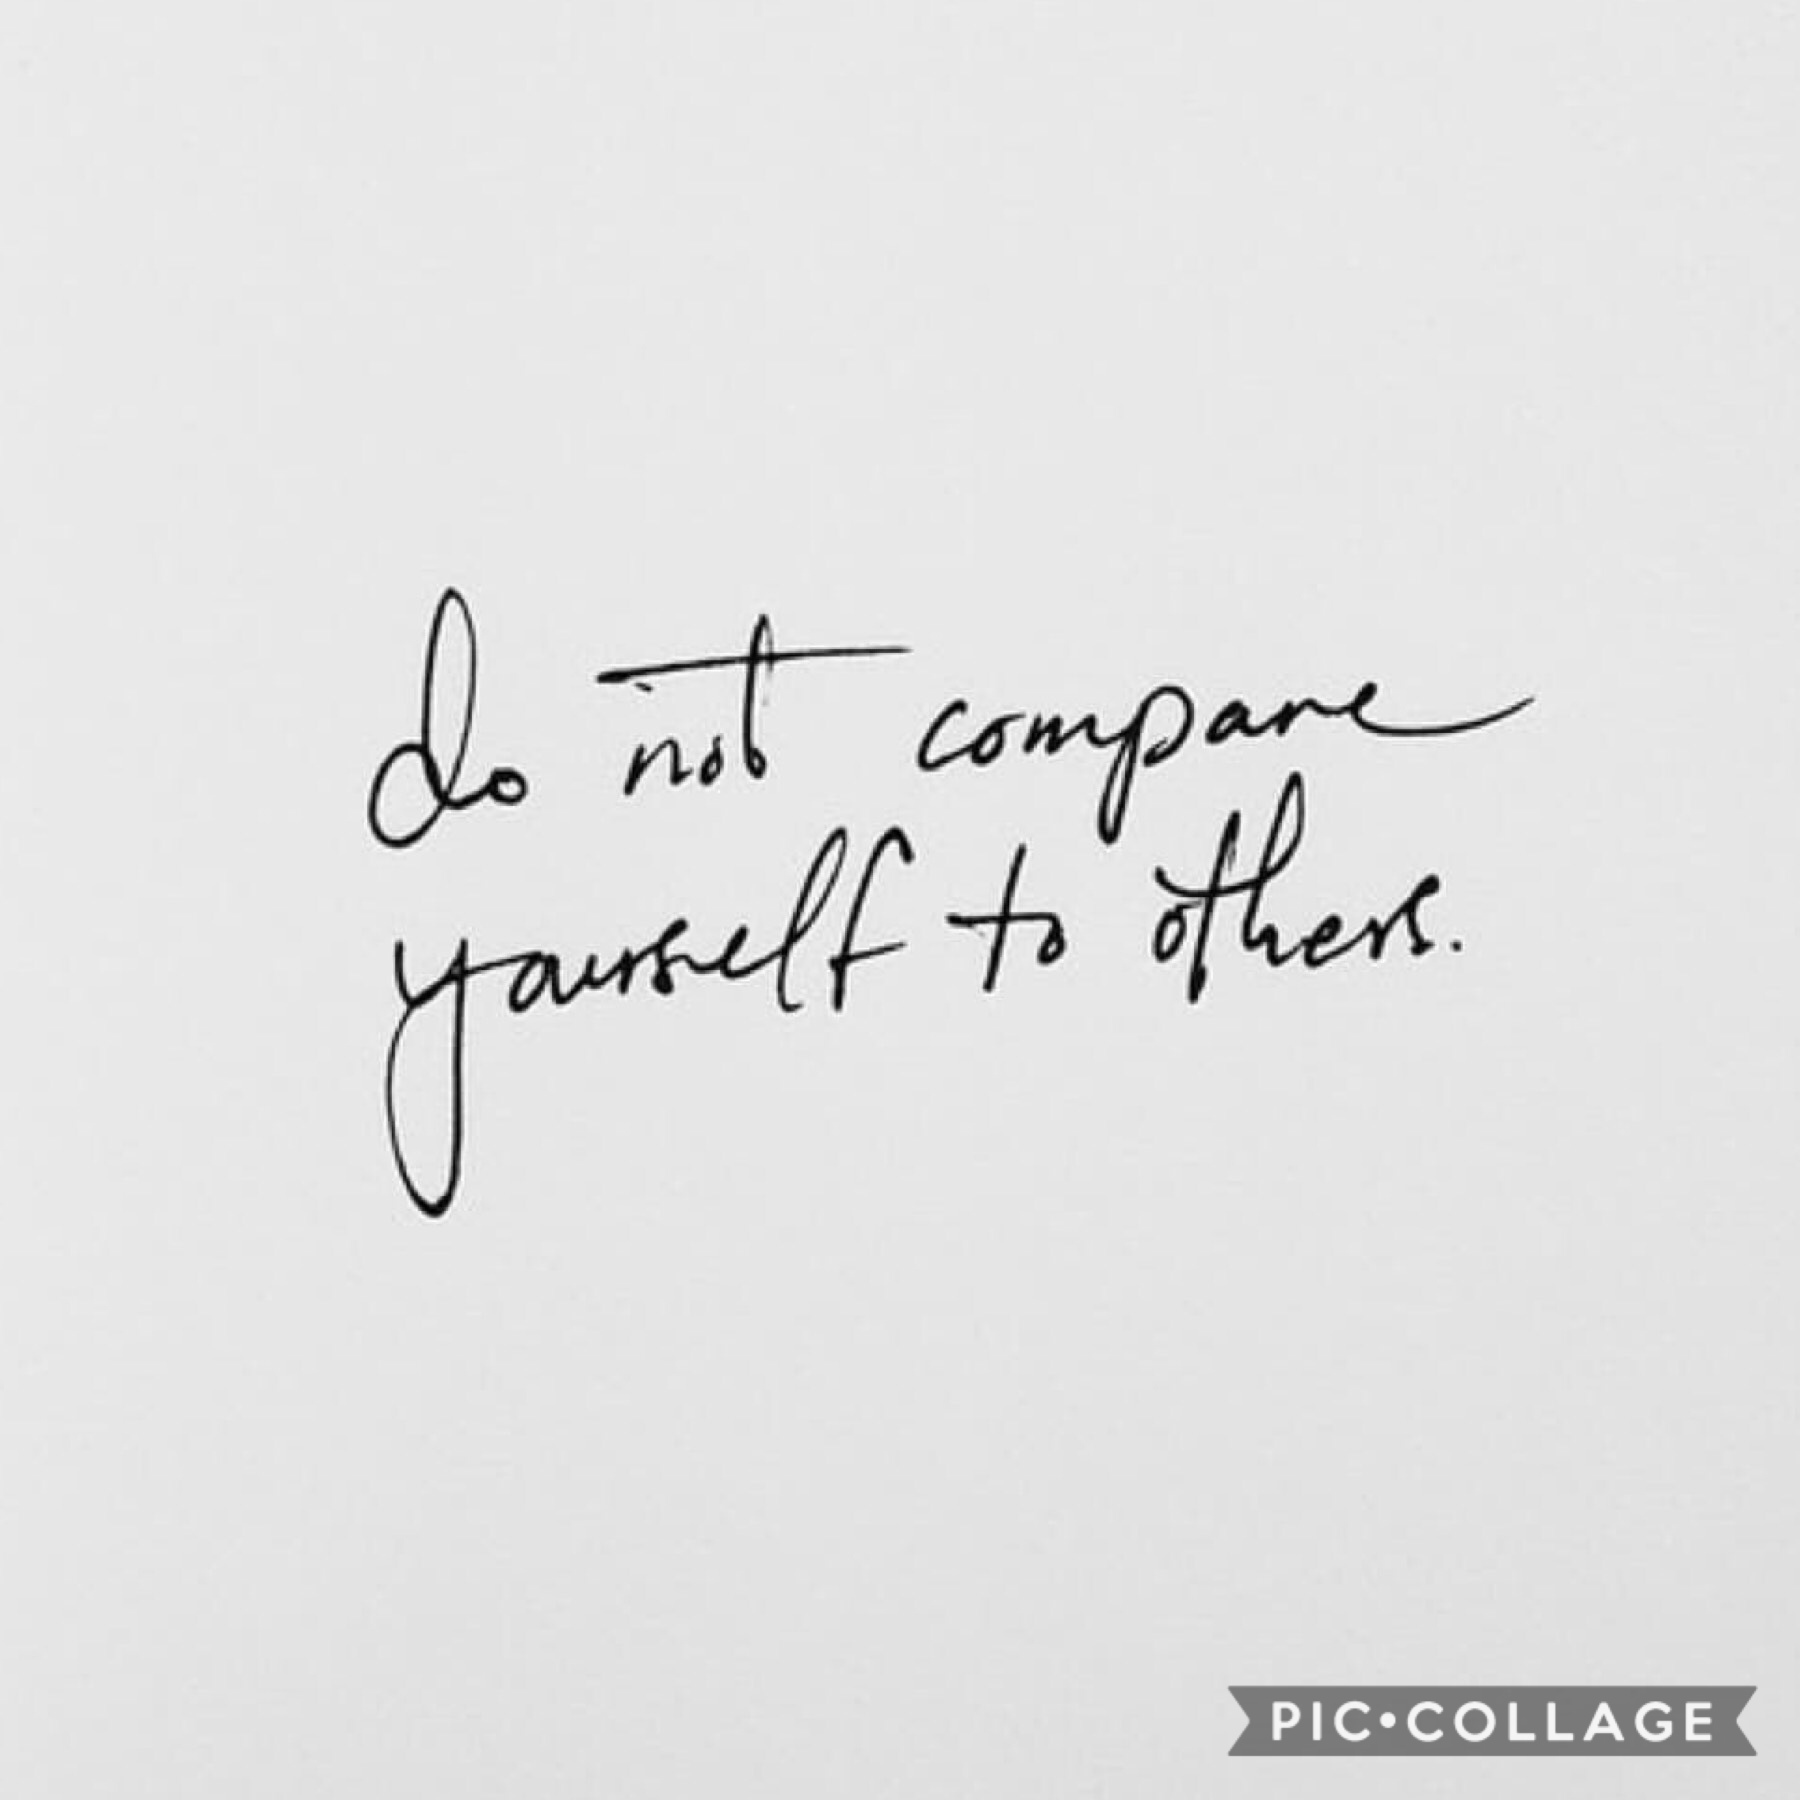 Reposted from @falling-petals-extras💫everyone is unique and beautiful, please don't compare yourself to others. It never really ends well💛You're spectacular and you've come this far and you can keep going💪I believe in you🌼